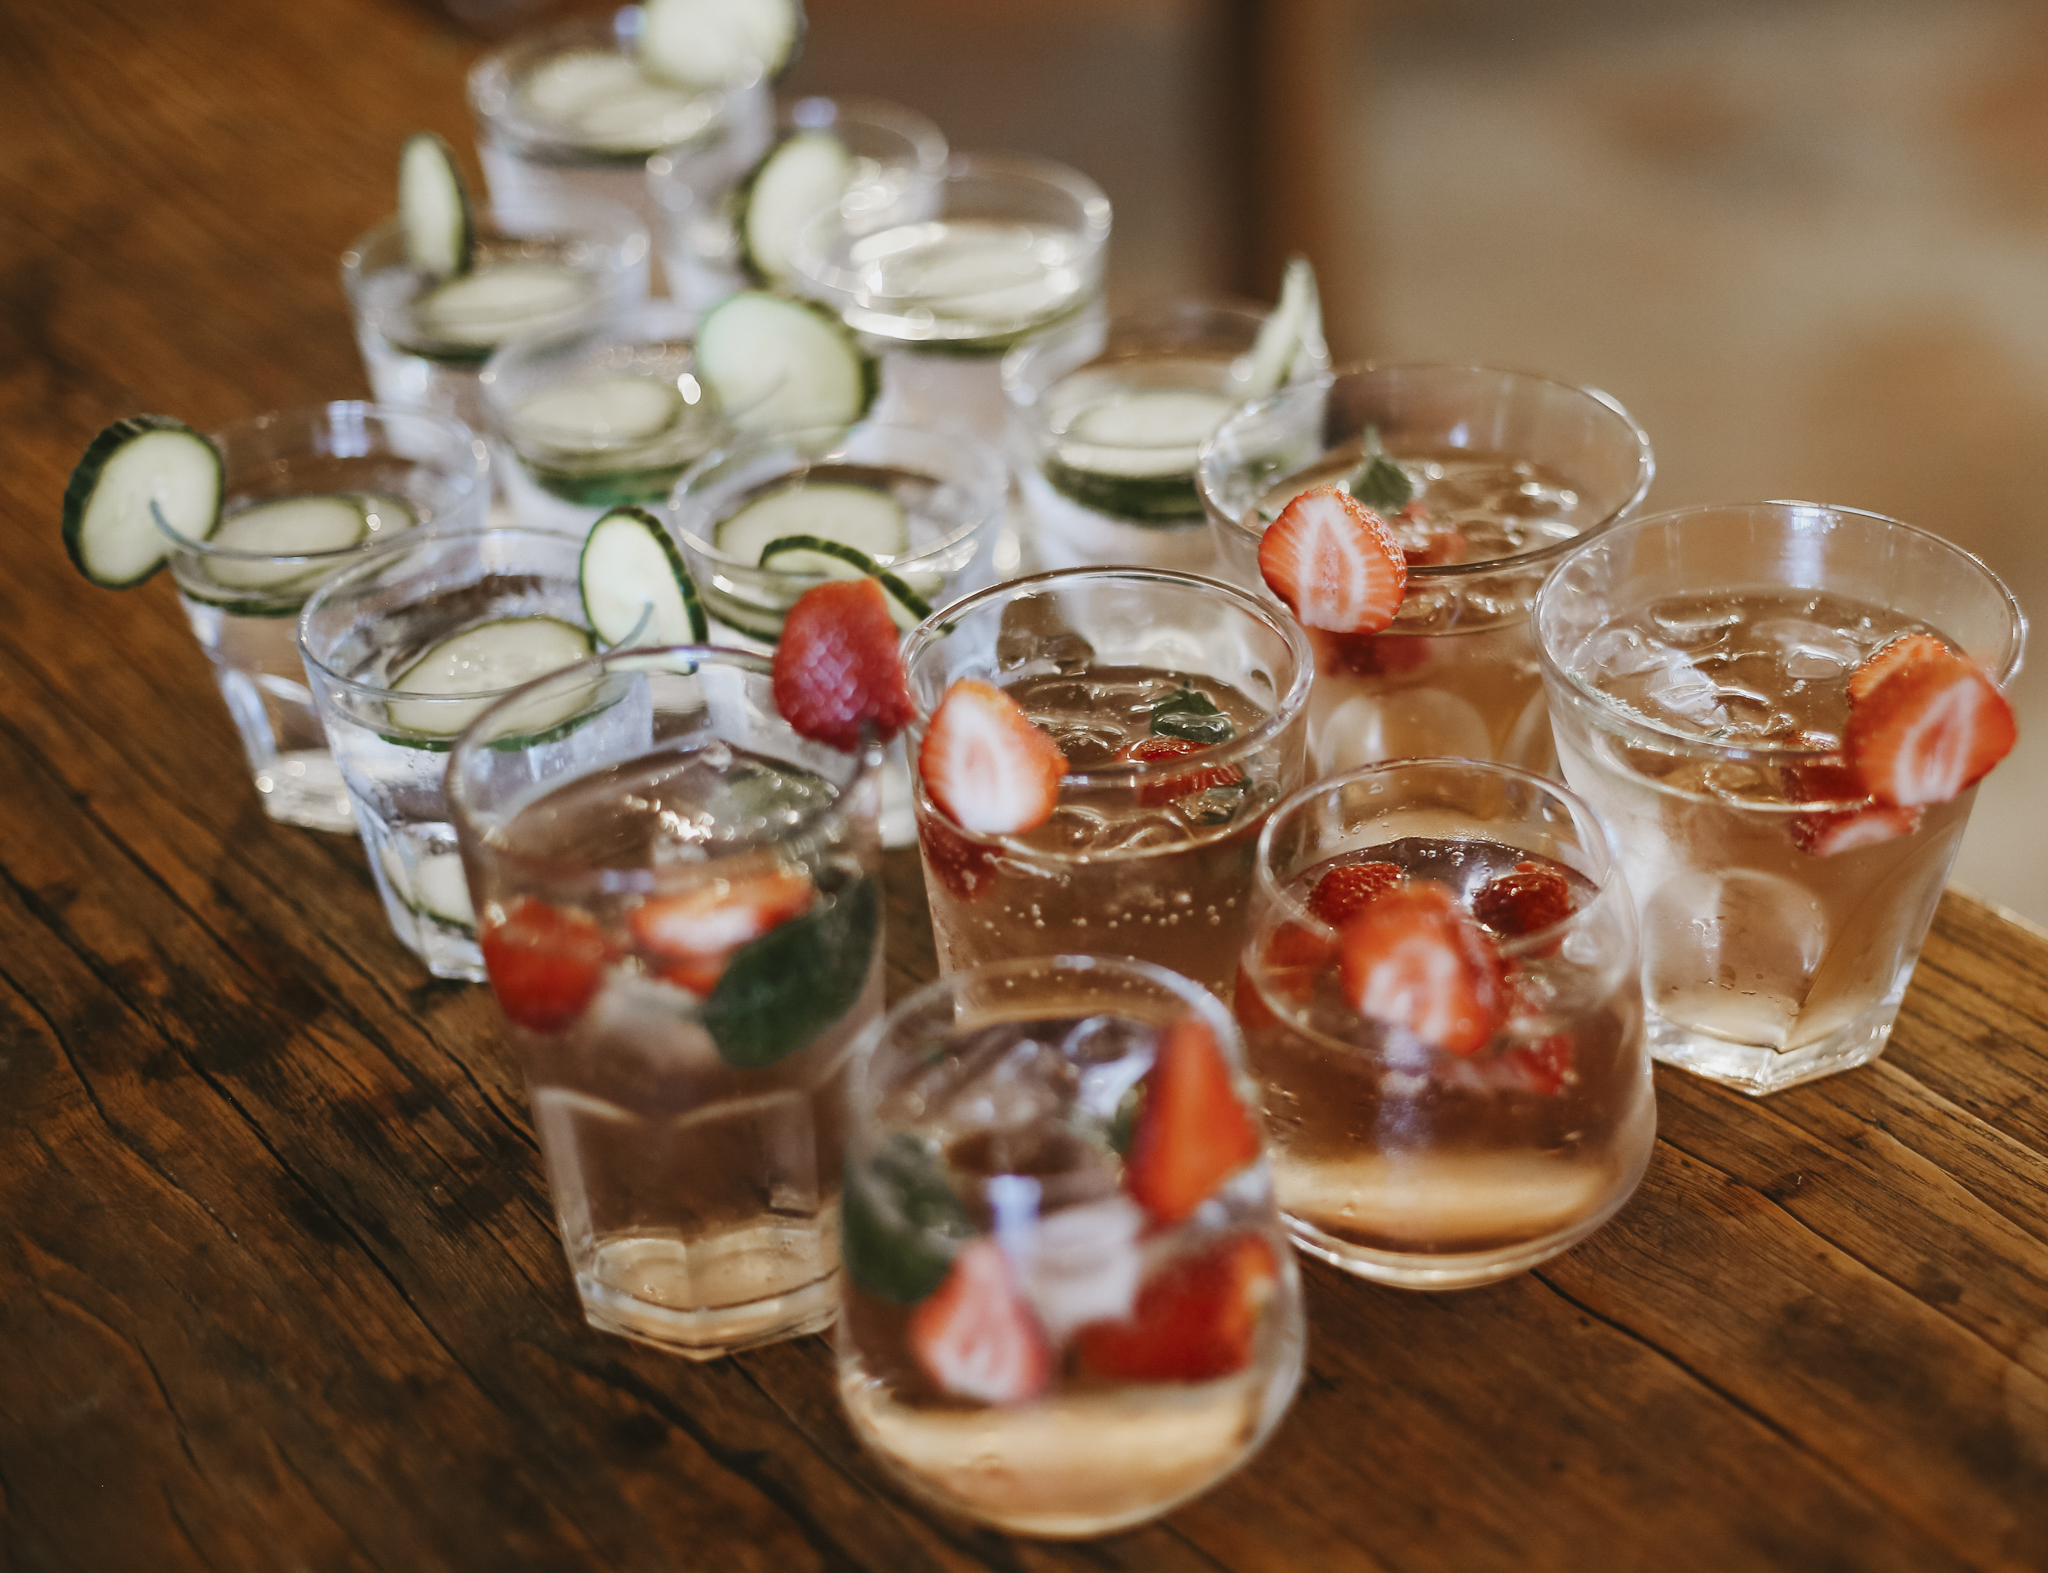 Strawberry and cucumber cocktails